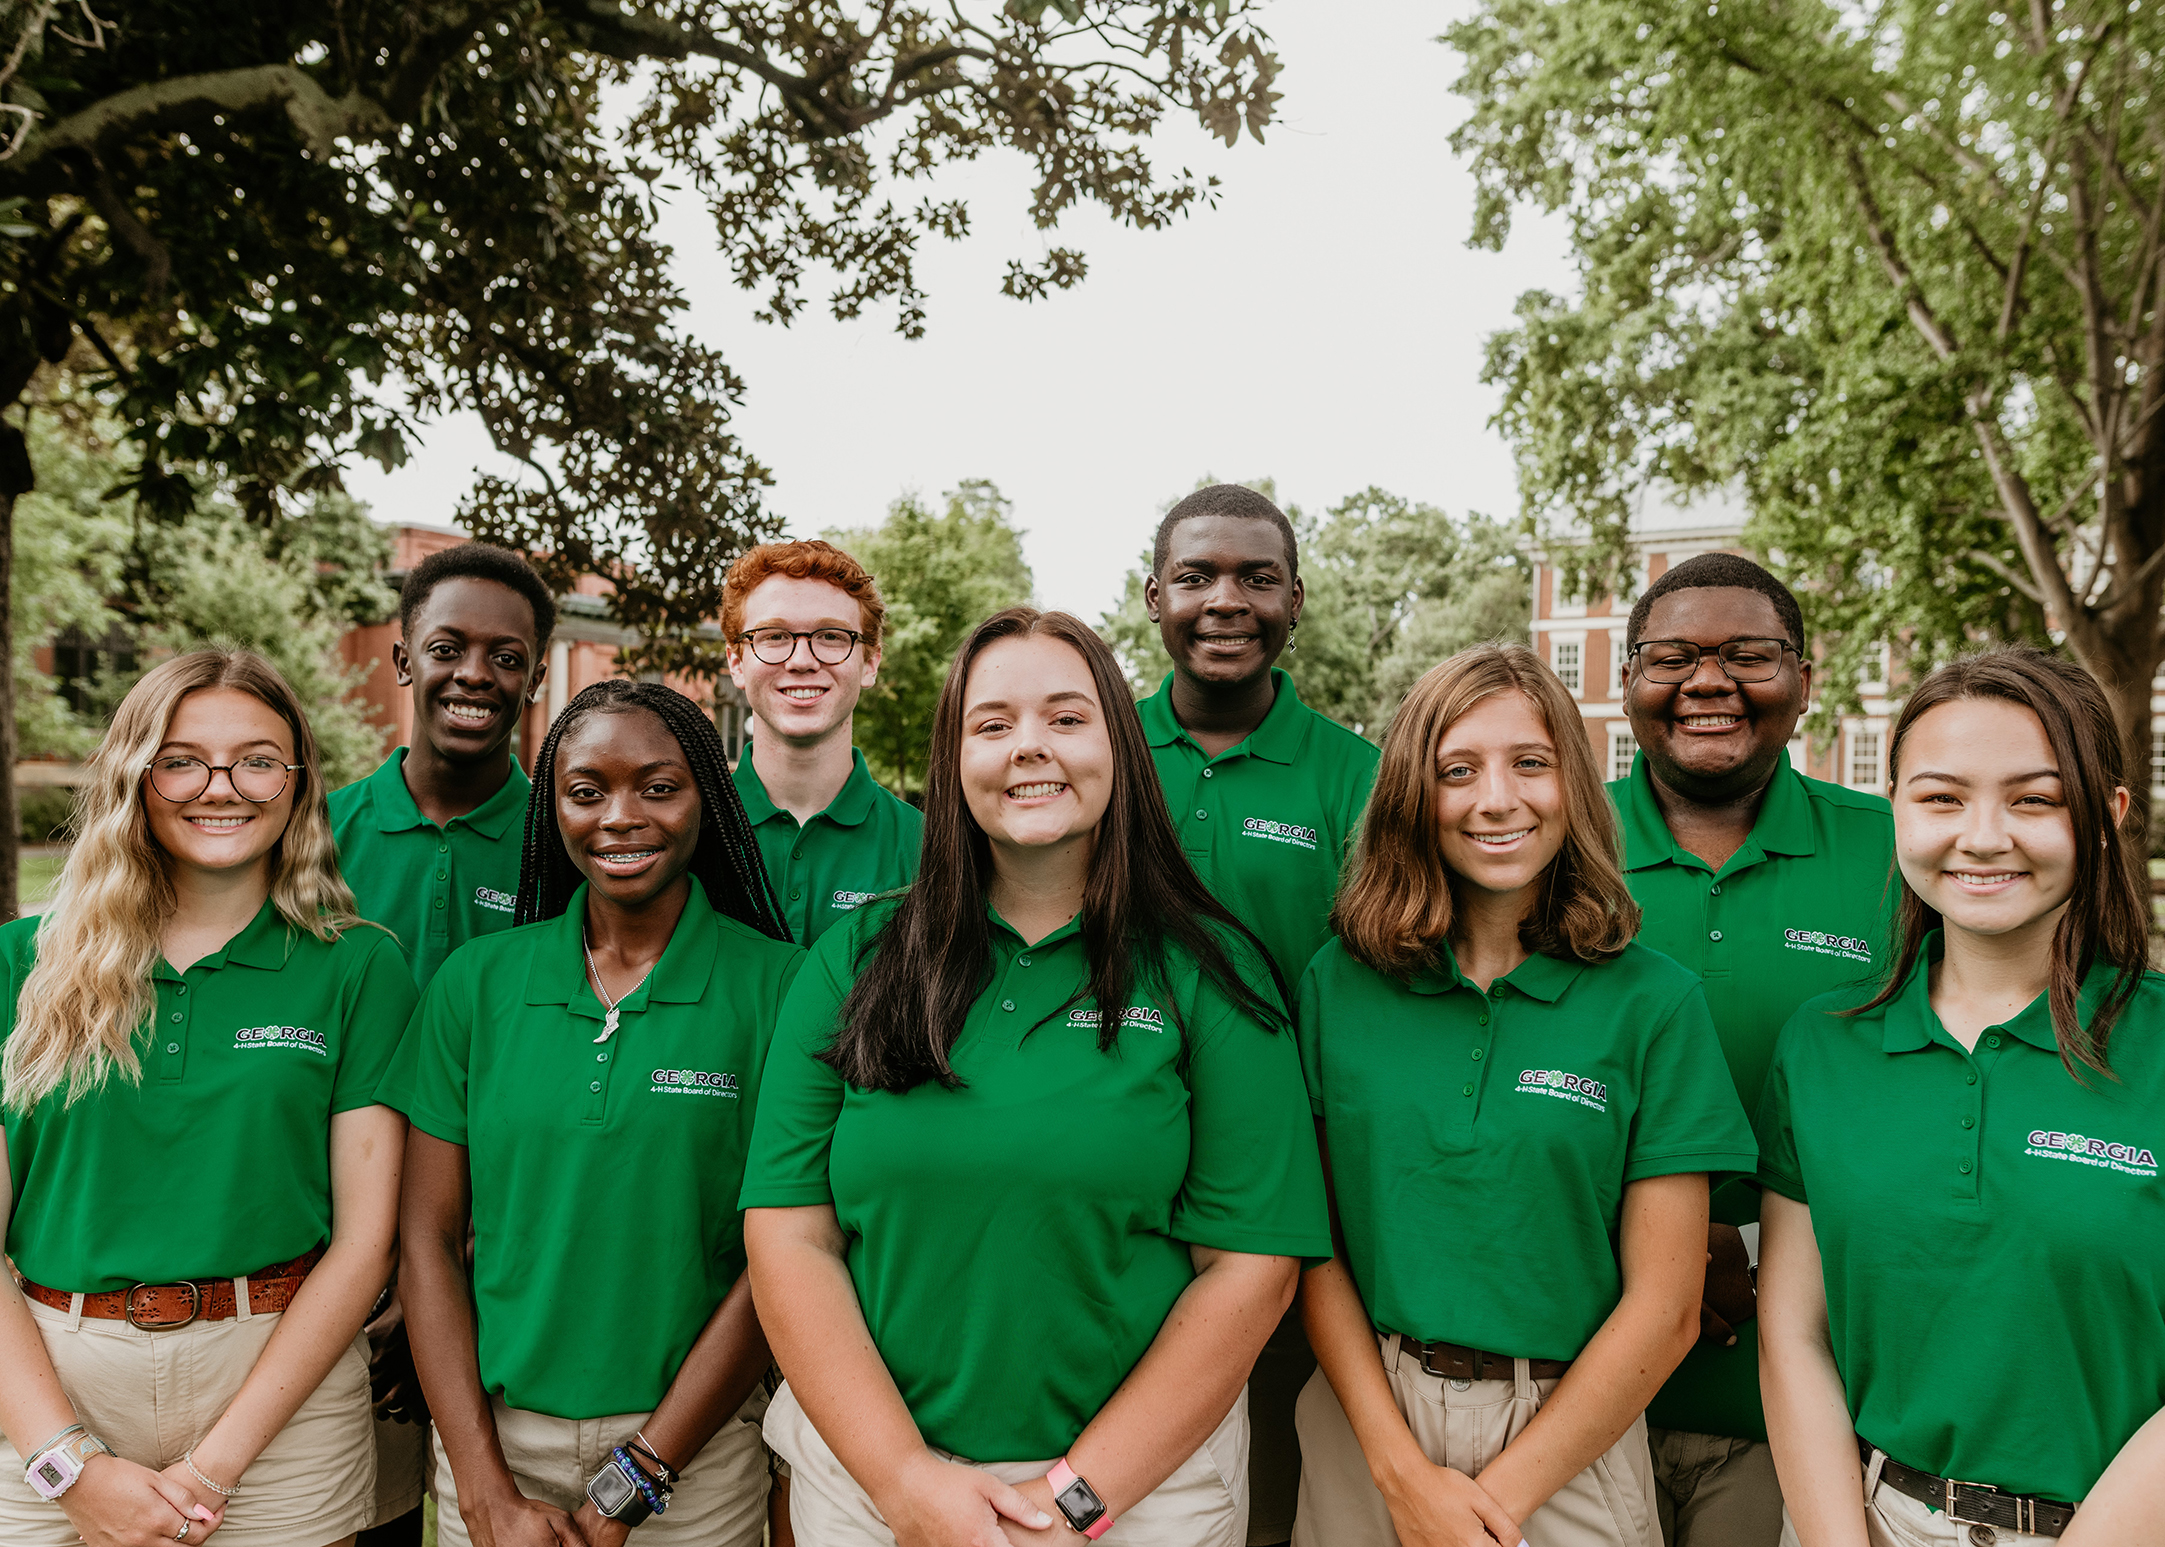 The 2021-22 Georgia 4-H State Board of Directors are (front row, left to right) Georgia Simmons, Aniyah Hall, Kaylee Collins, Katie Beth Brewer, Hinano Tomlinson, (back row, left to right) Willie White, Davis Slate, Jay Lovett and Ashton Ates.